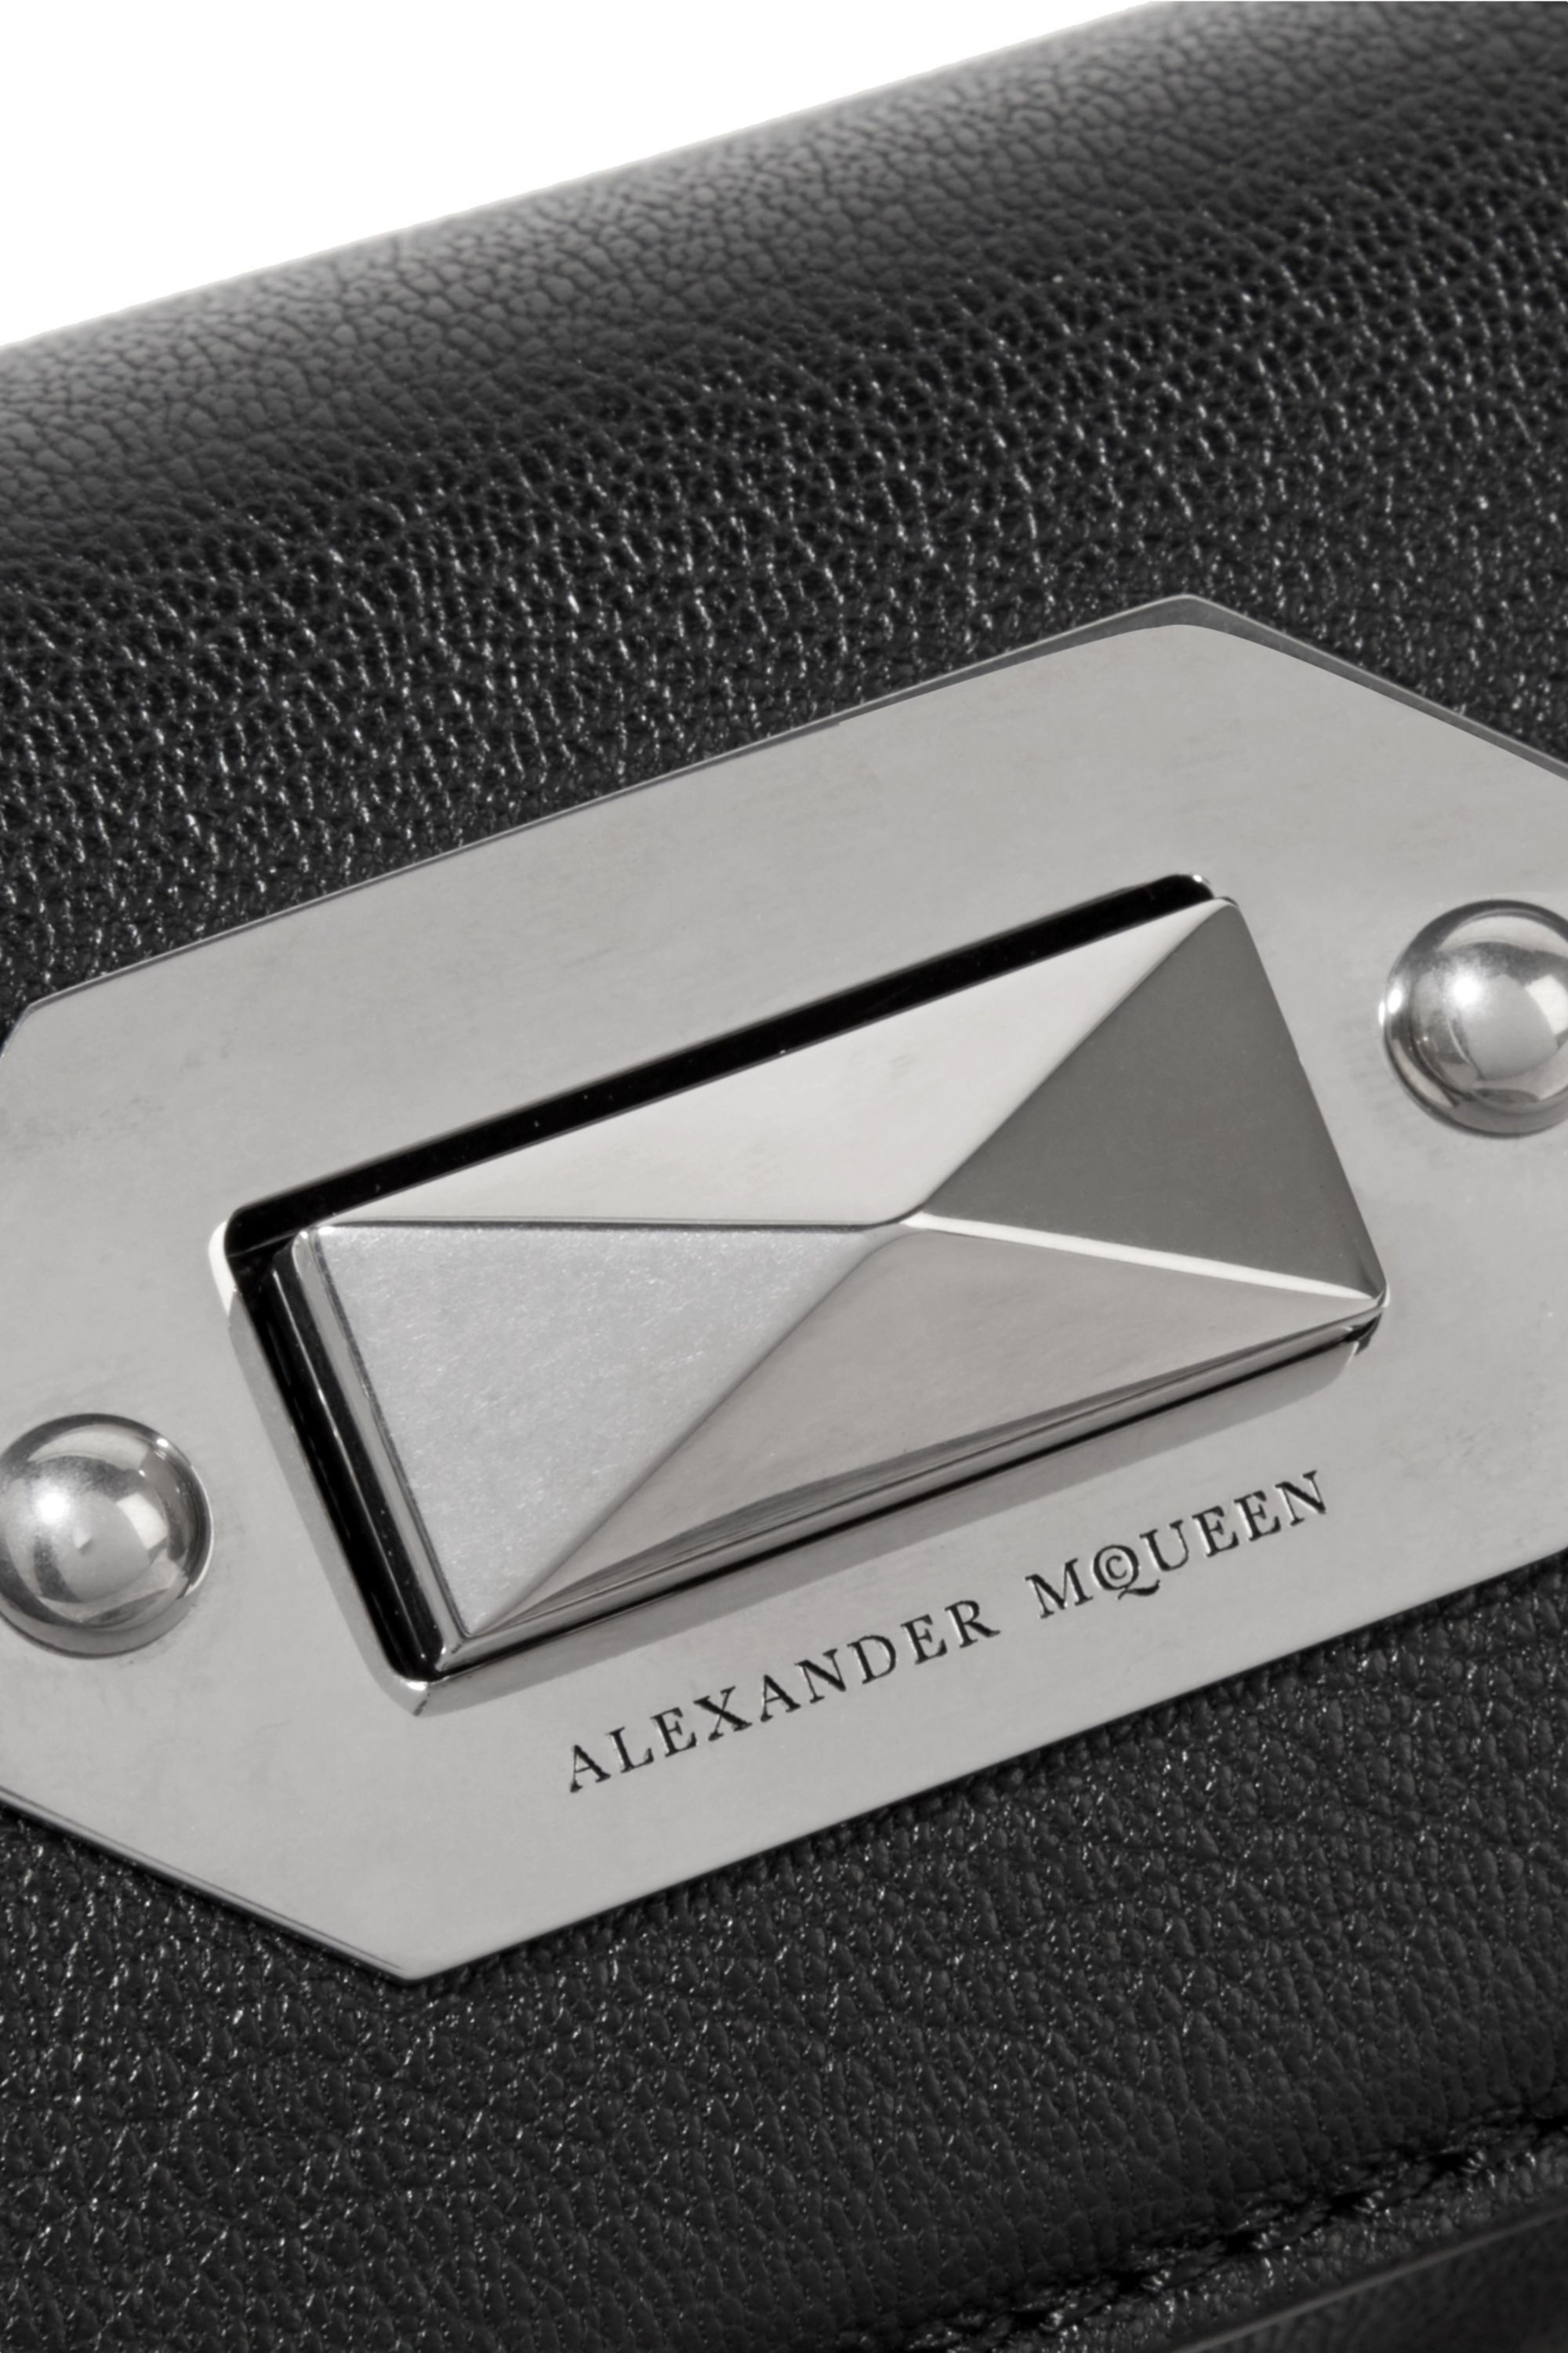 Alexander McQueen Box Bag 16 textured-leather shoulder bag